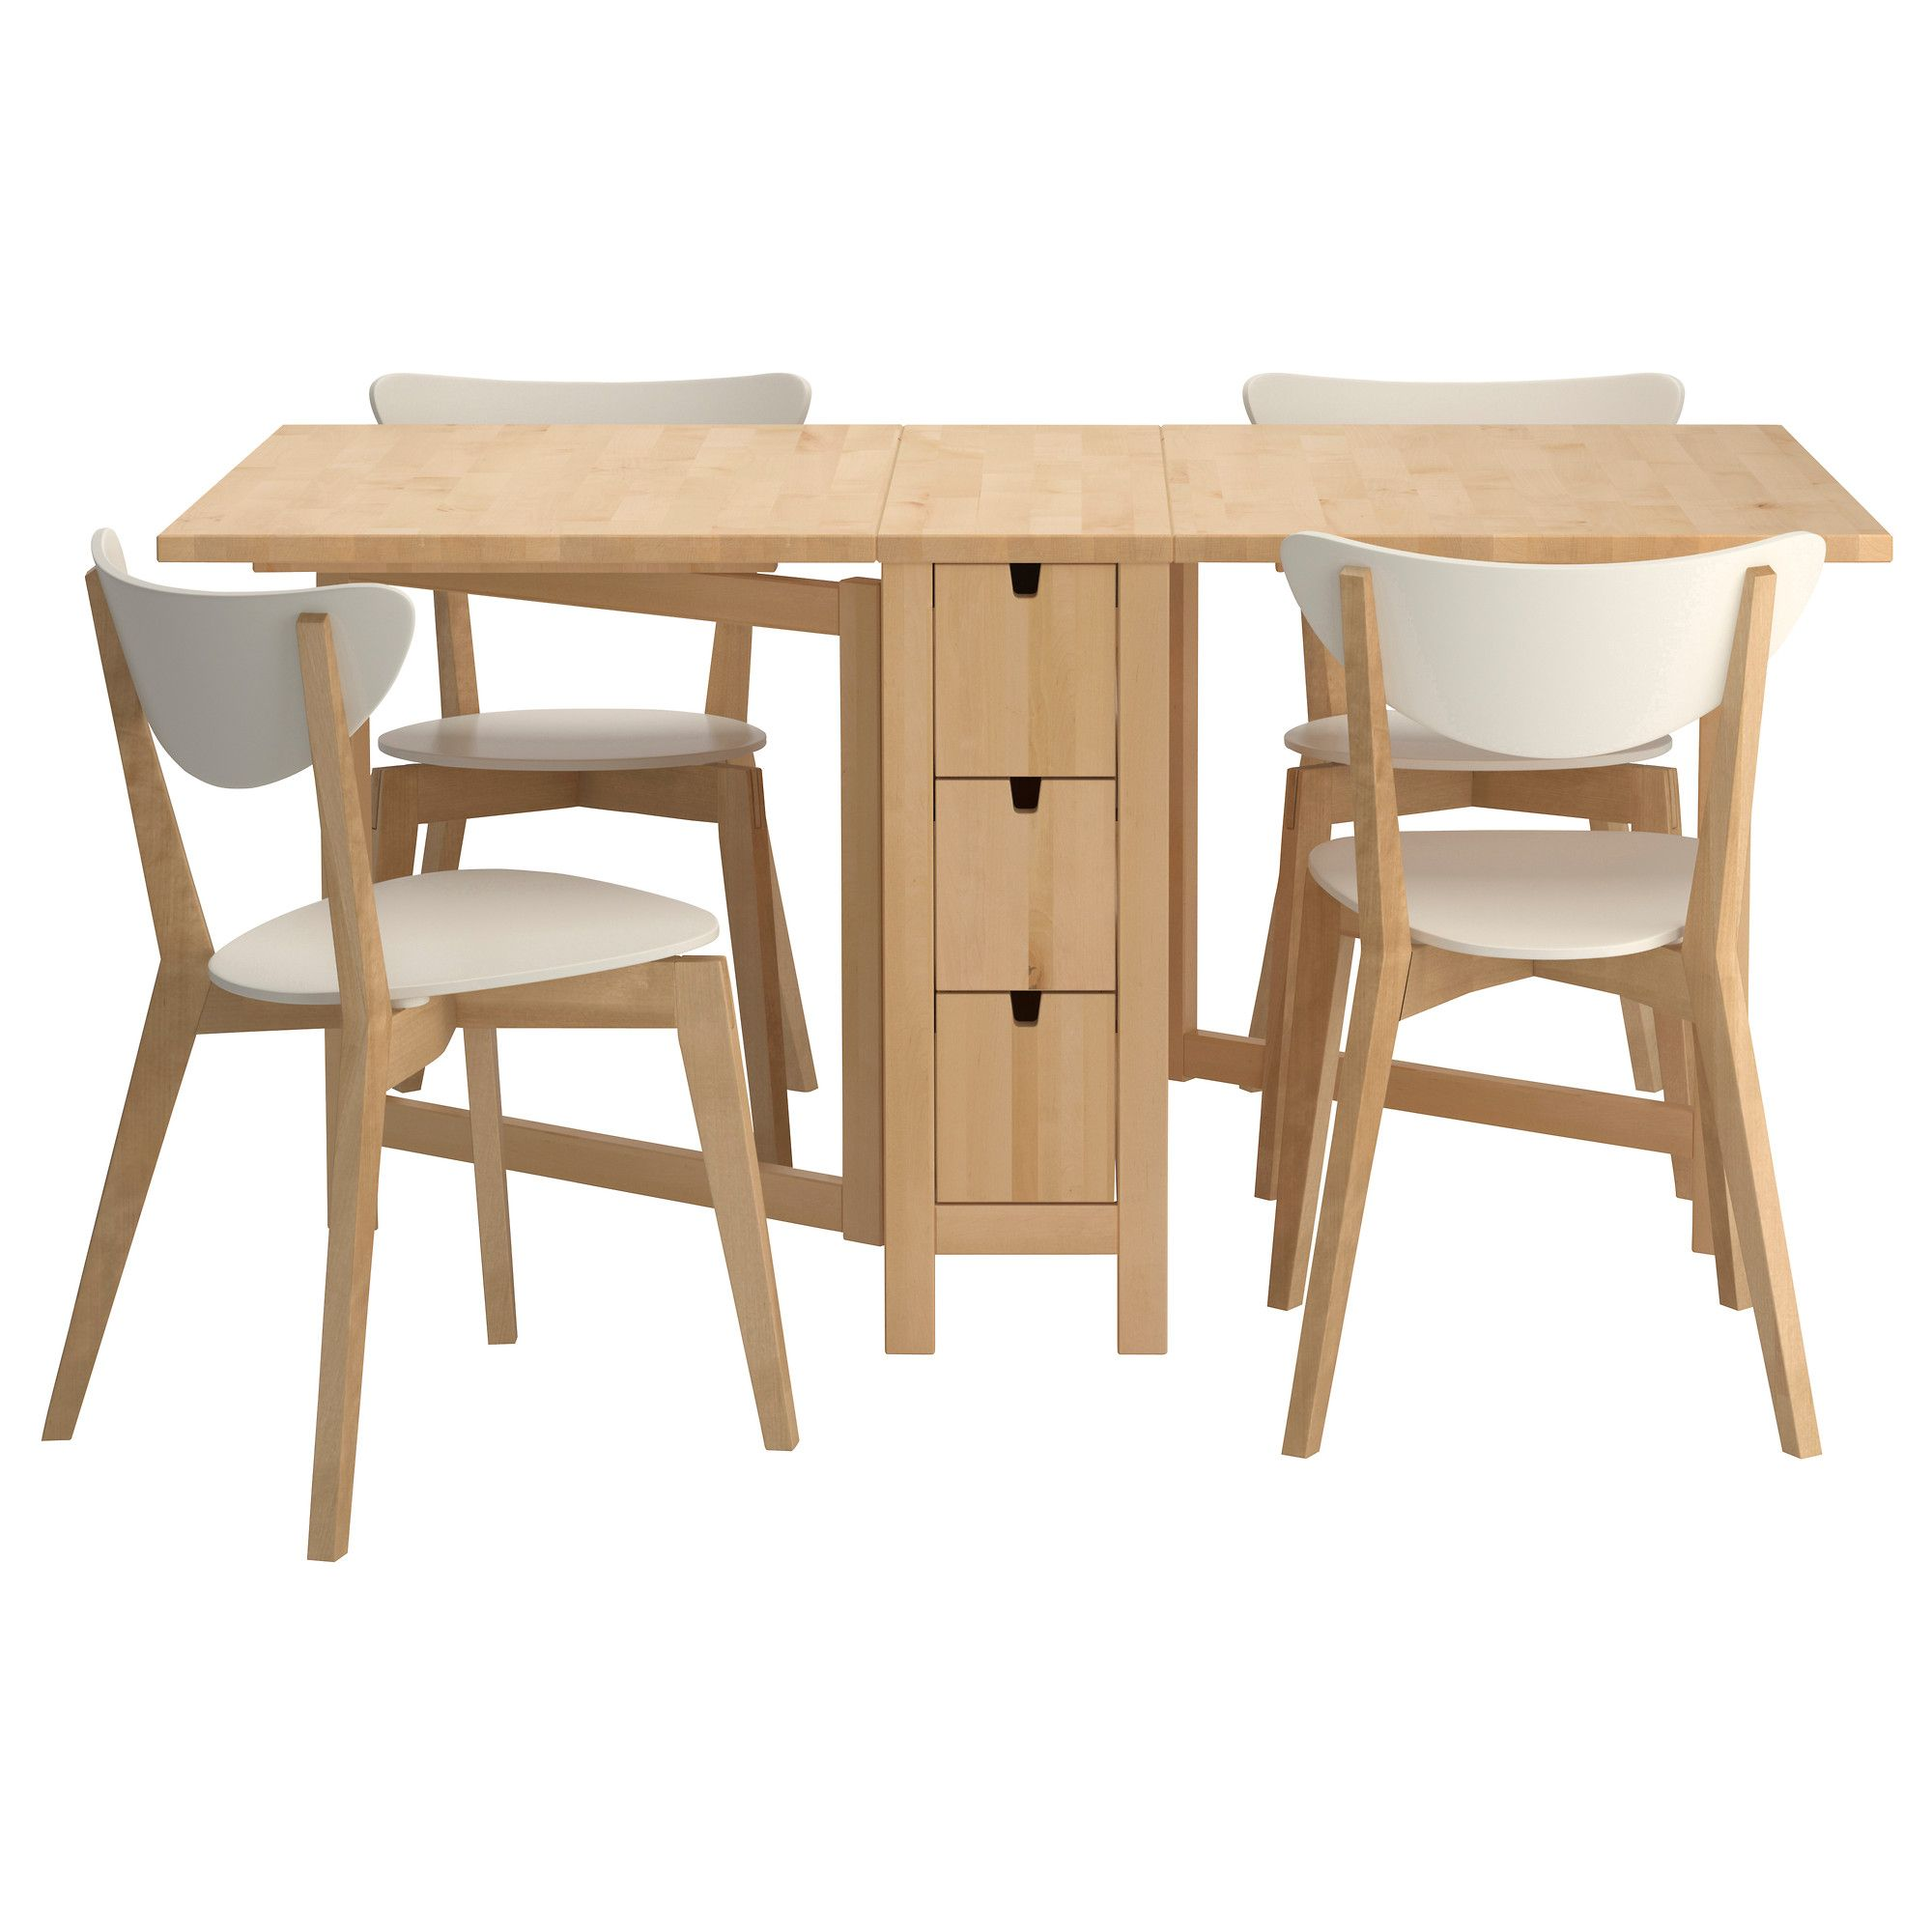 Norden nordmyra table and 4 chairs ikea for the love for Small dining room table and chairs